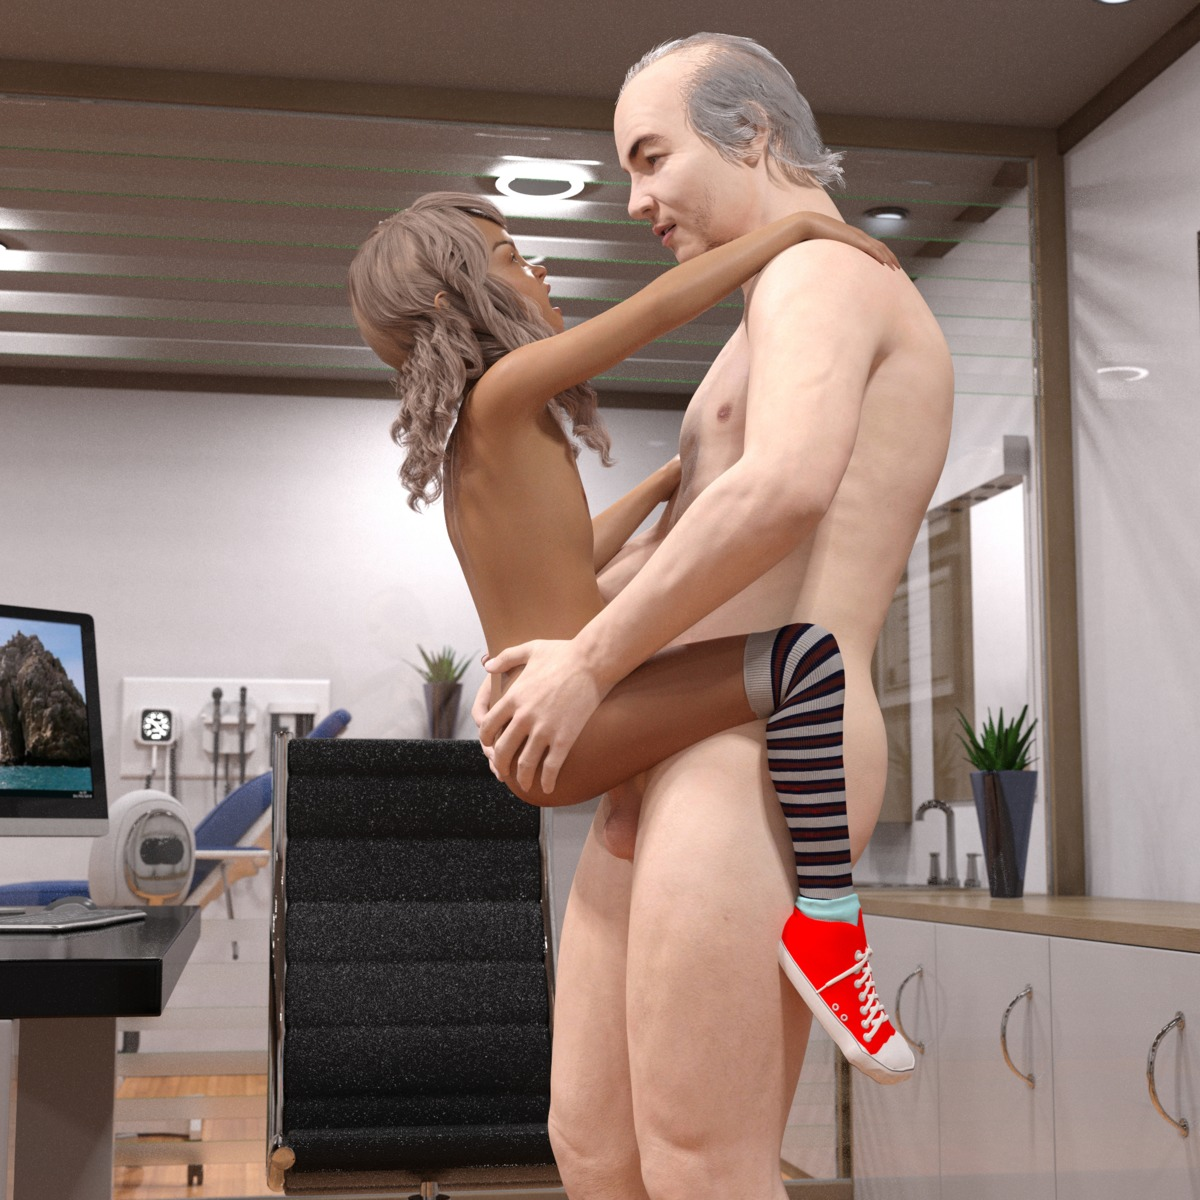 1boy 1girl 3dcg age_difference ass ass_grab doctor draxlasto flat_chest held_up highres looking_at_partner nipples nude open_mouth penis photorealistic rape sex shoes standing striped_legwear television testicles thighhighs vaginal